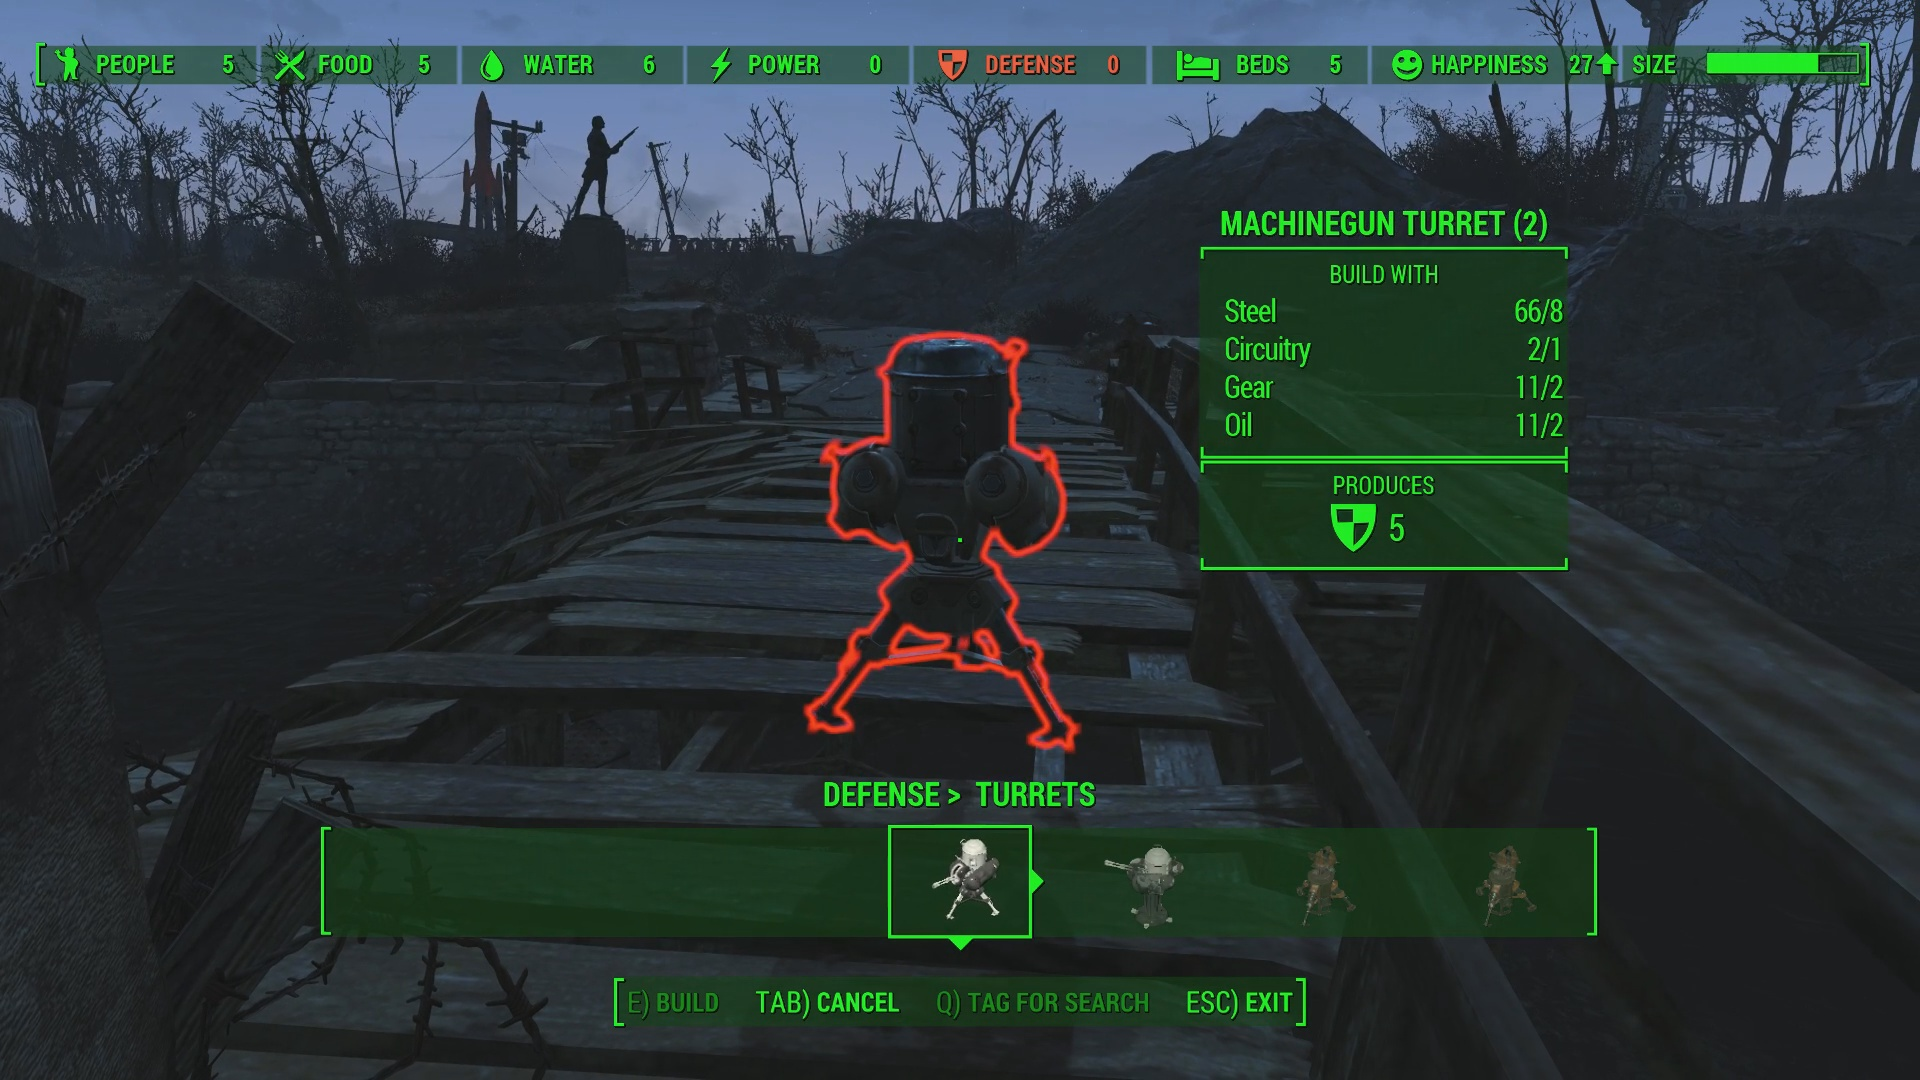 Best Way To Get Food For Settlements In Fallout